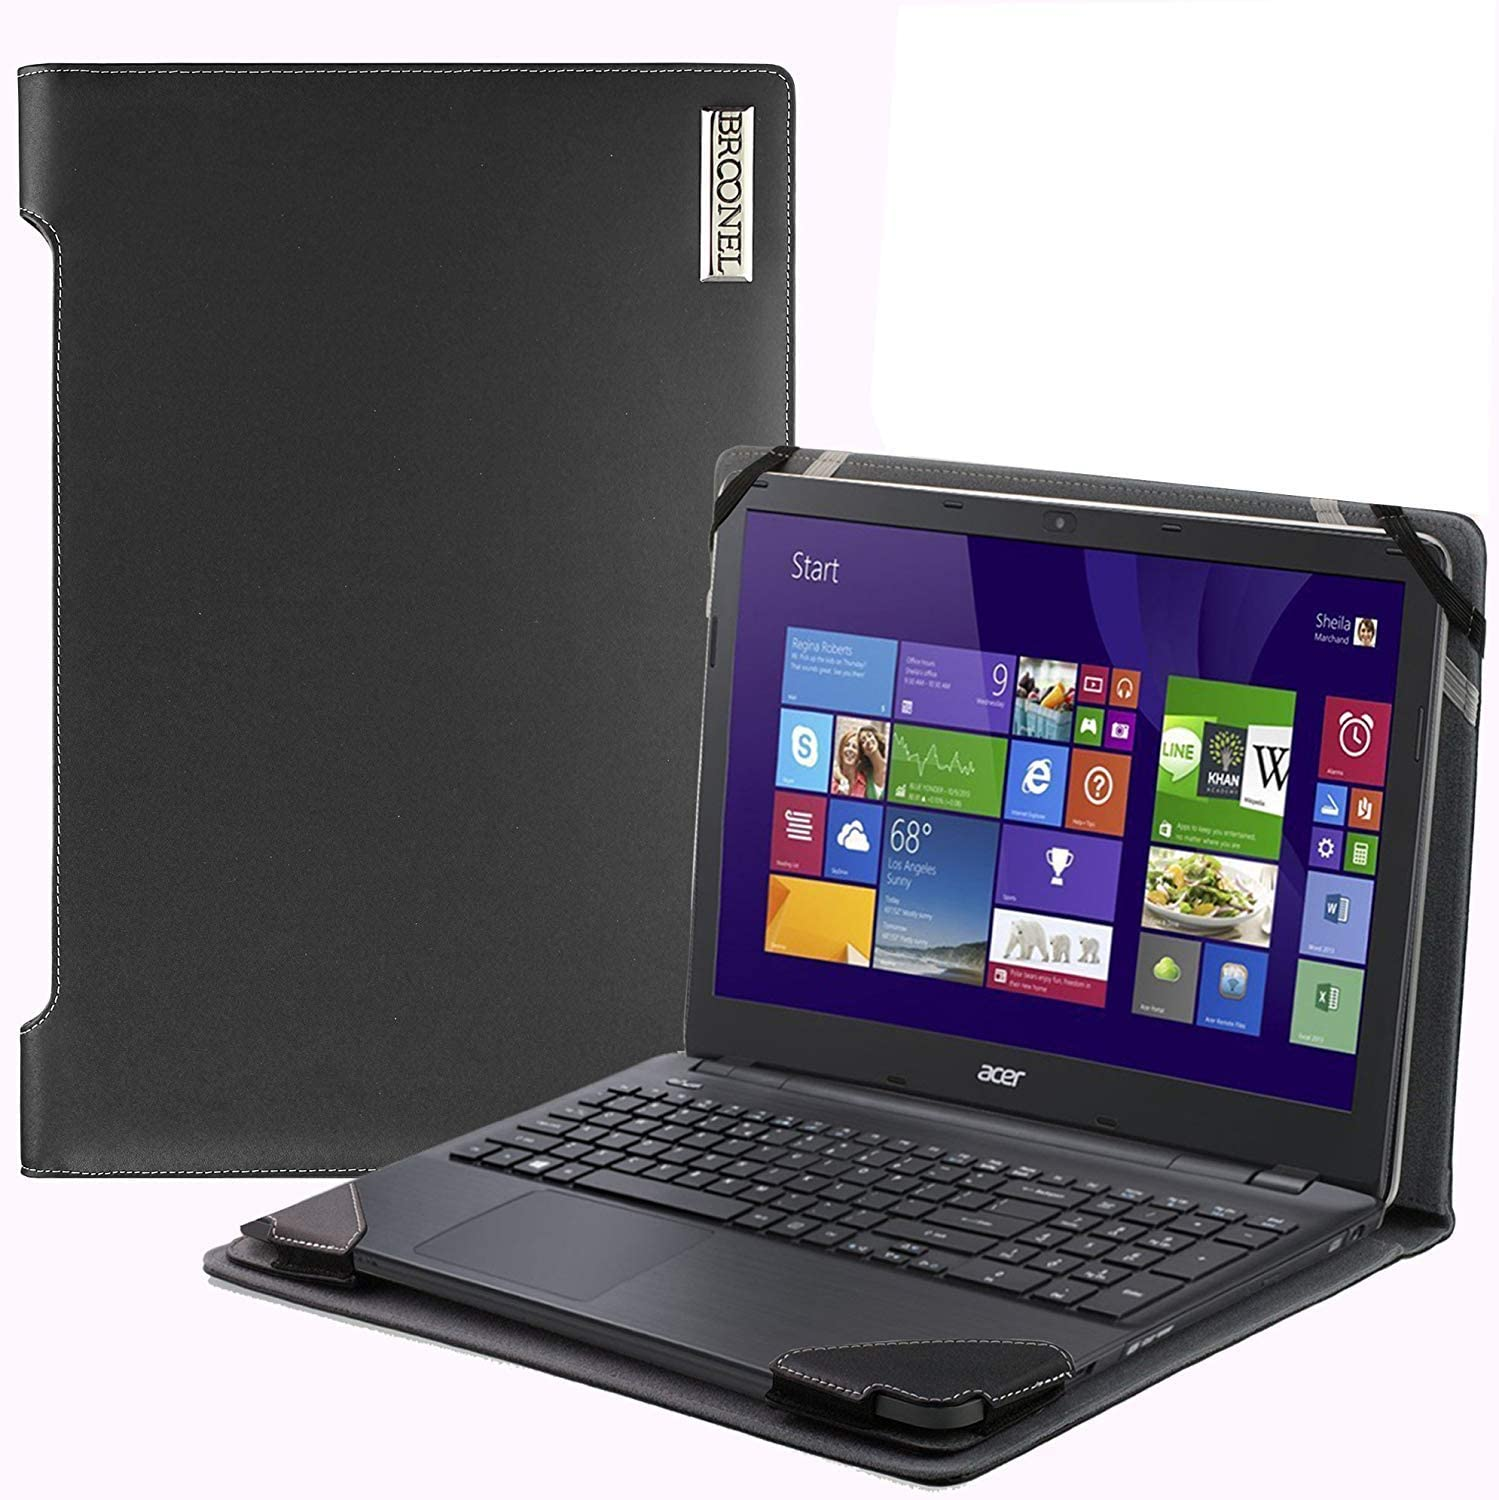 Broonel - Profile Series - Black Leather Laptop Case Compatible with The Acer Swift 3 (SF314-42) 14""